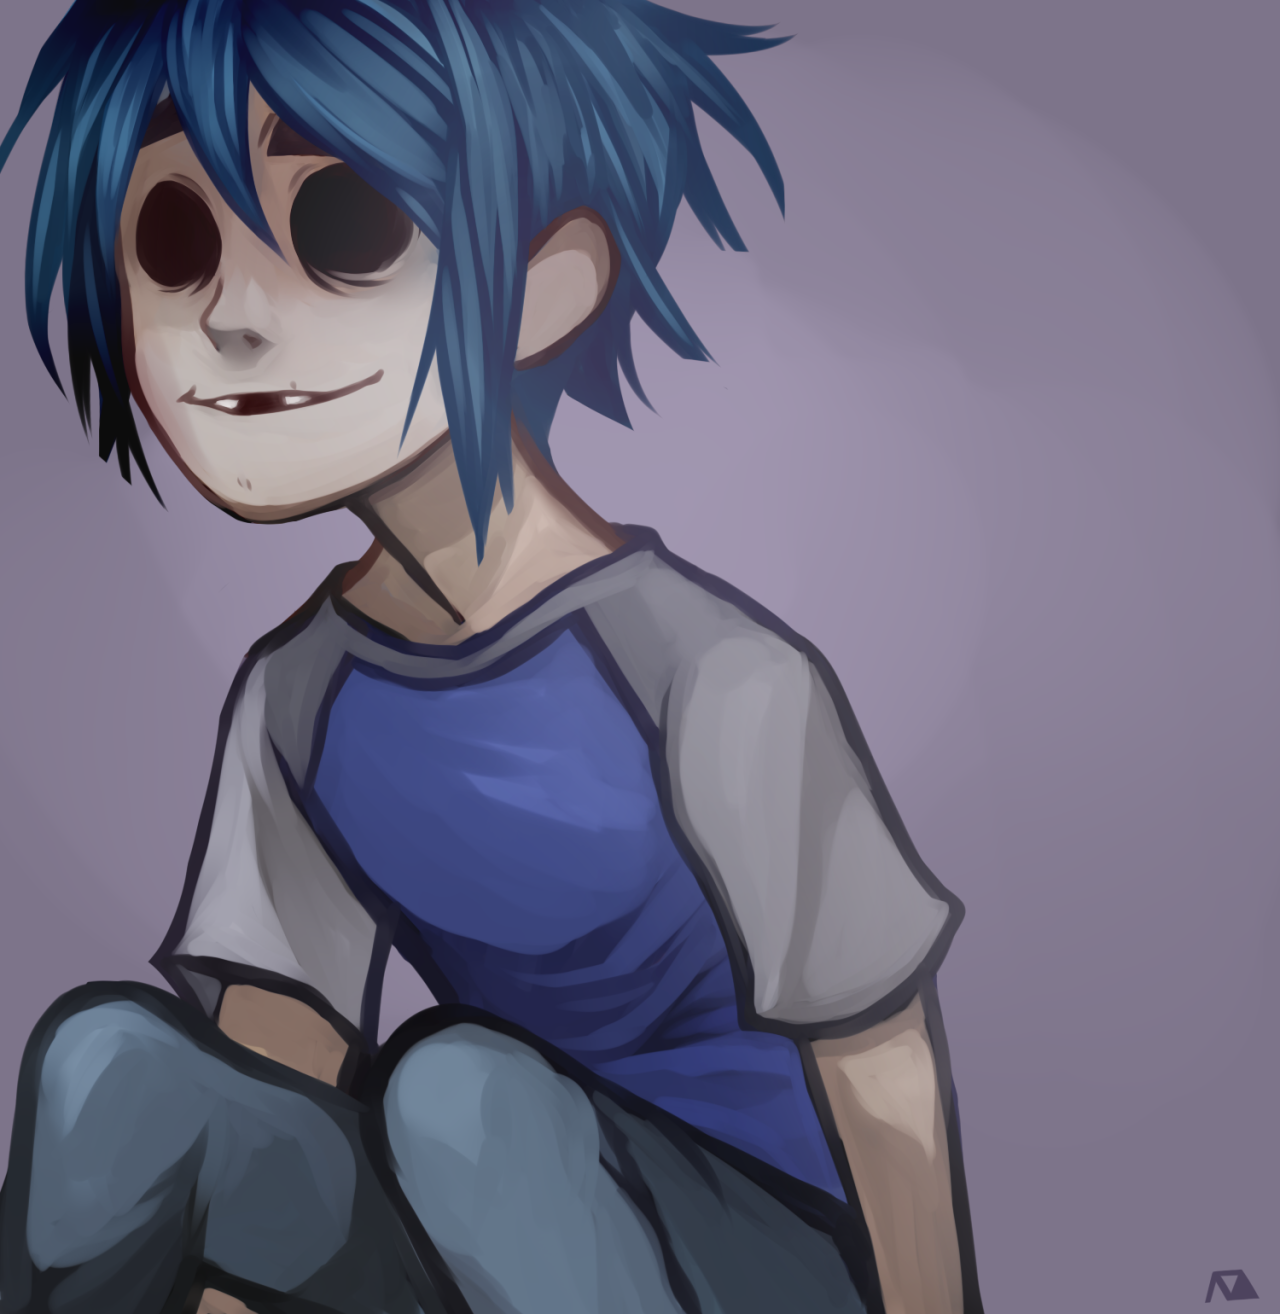 Pin by Paige murrey on Gorillaz Gorillaz art, Gorillaz